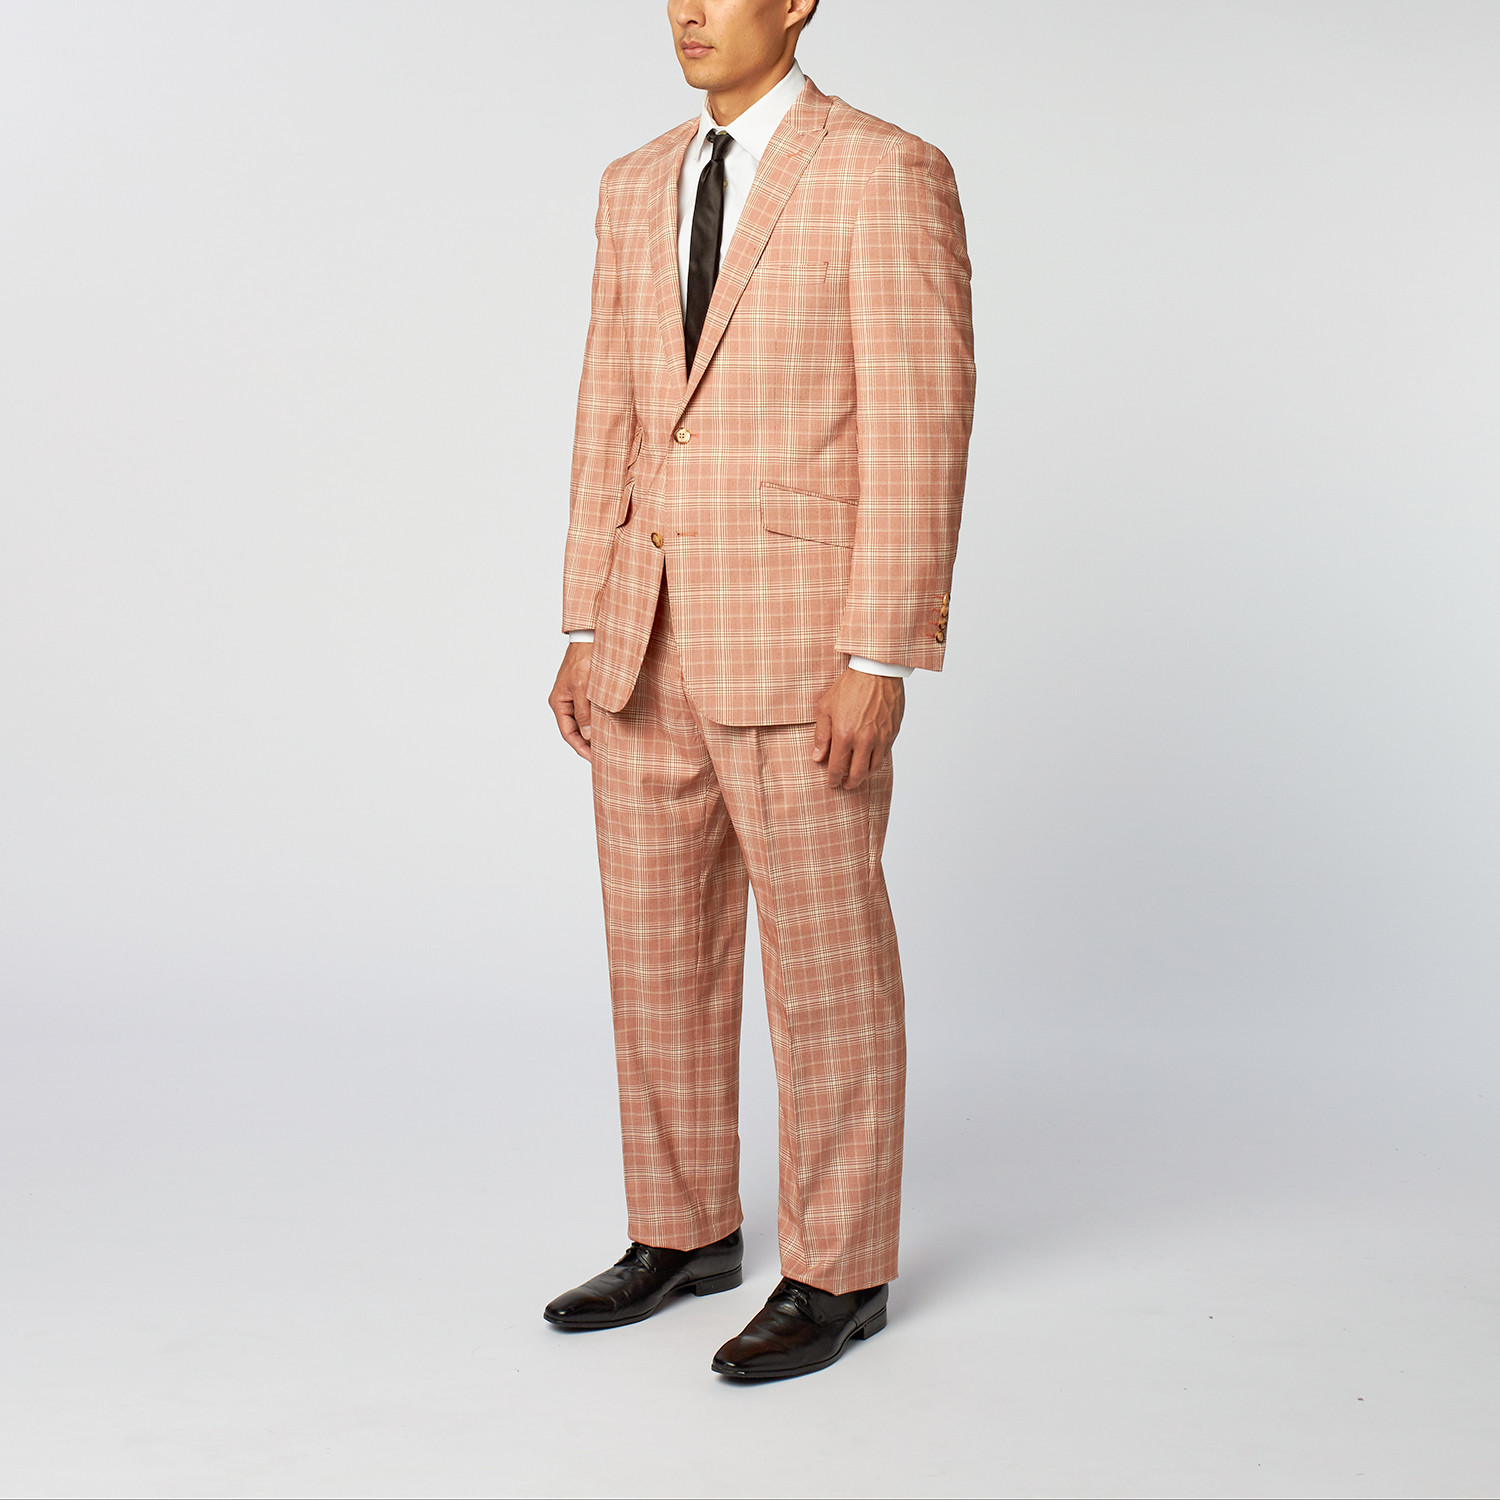 440v.cf: 34r suit. Interesting Finds Updated Daily. This mordern look suit is great for any and all Mens Tight Slim Fit Notched Lapel 3 Piece Suit with Regular-Cut Jacket by Taheri. by Sebastian Taheri Uomo. $ - $ $ 75 $ 00 Prime. FREE Shipping on eligible orders.